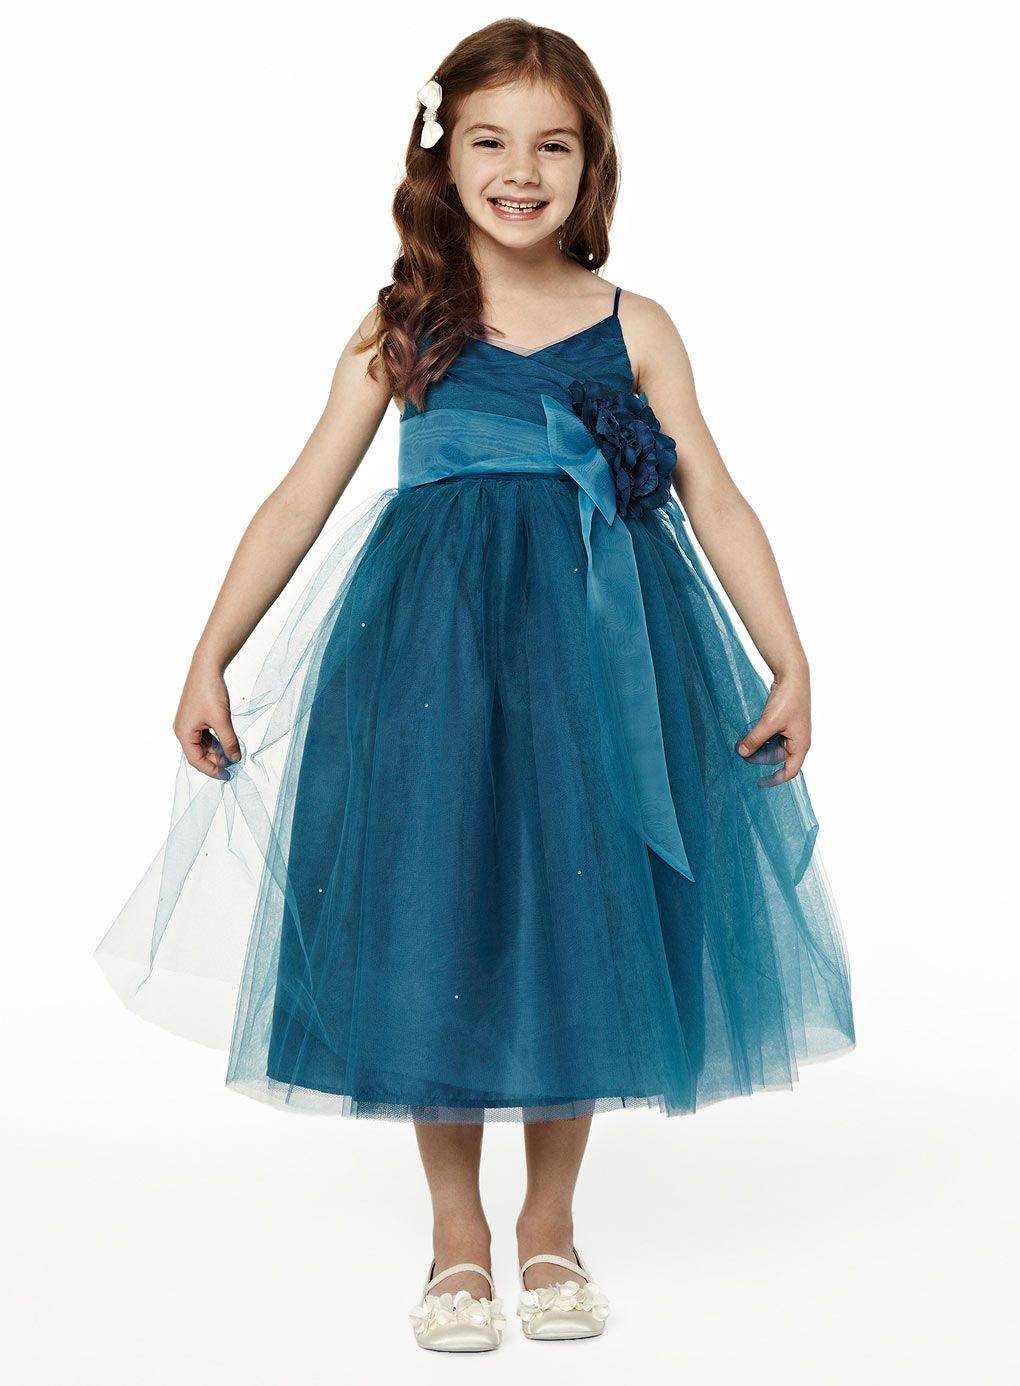 Winter teal double straps ruched tulle flower girl dress wedding winter teal double straps ruched tulle flower girl dress ombrellifo Choice Image